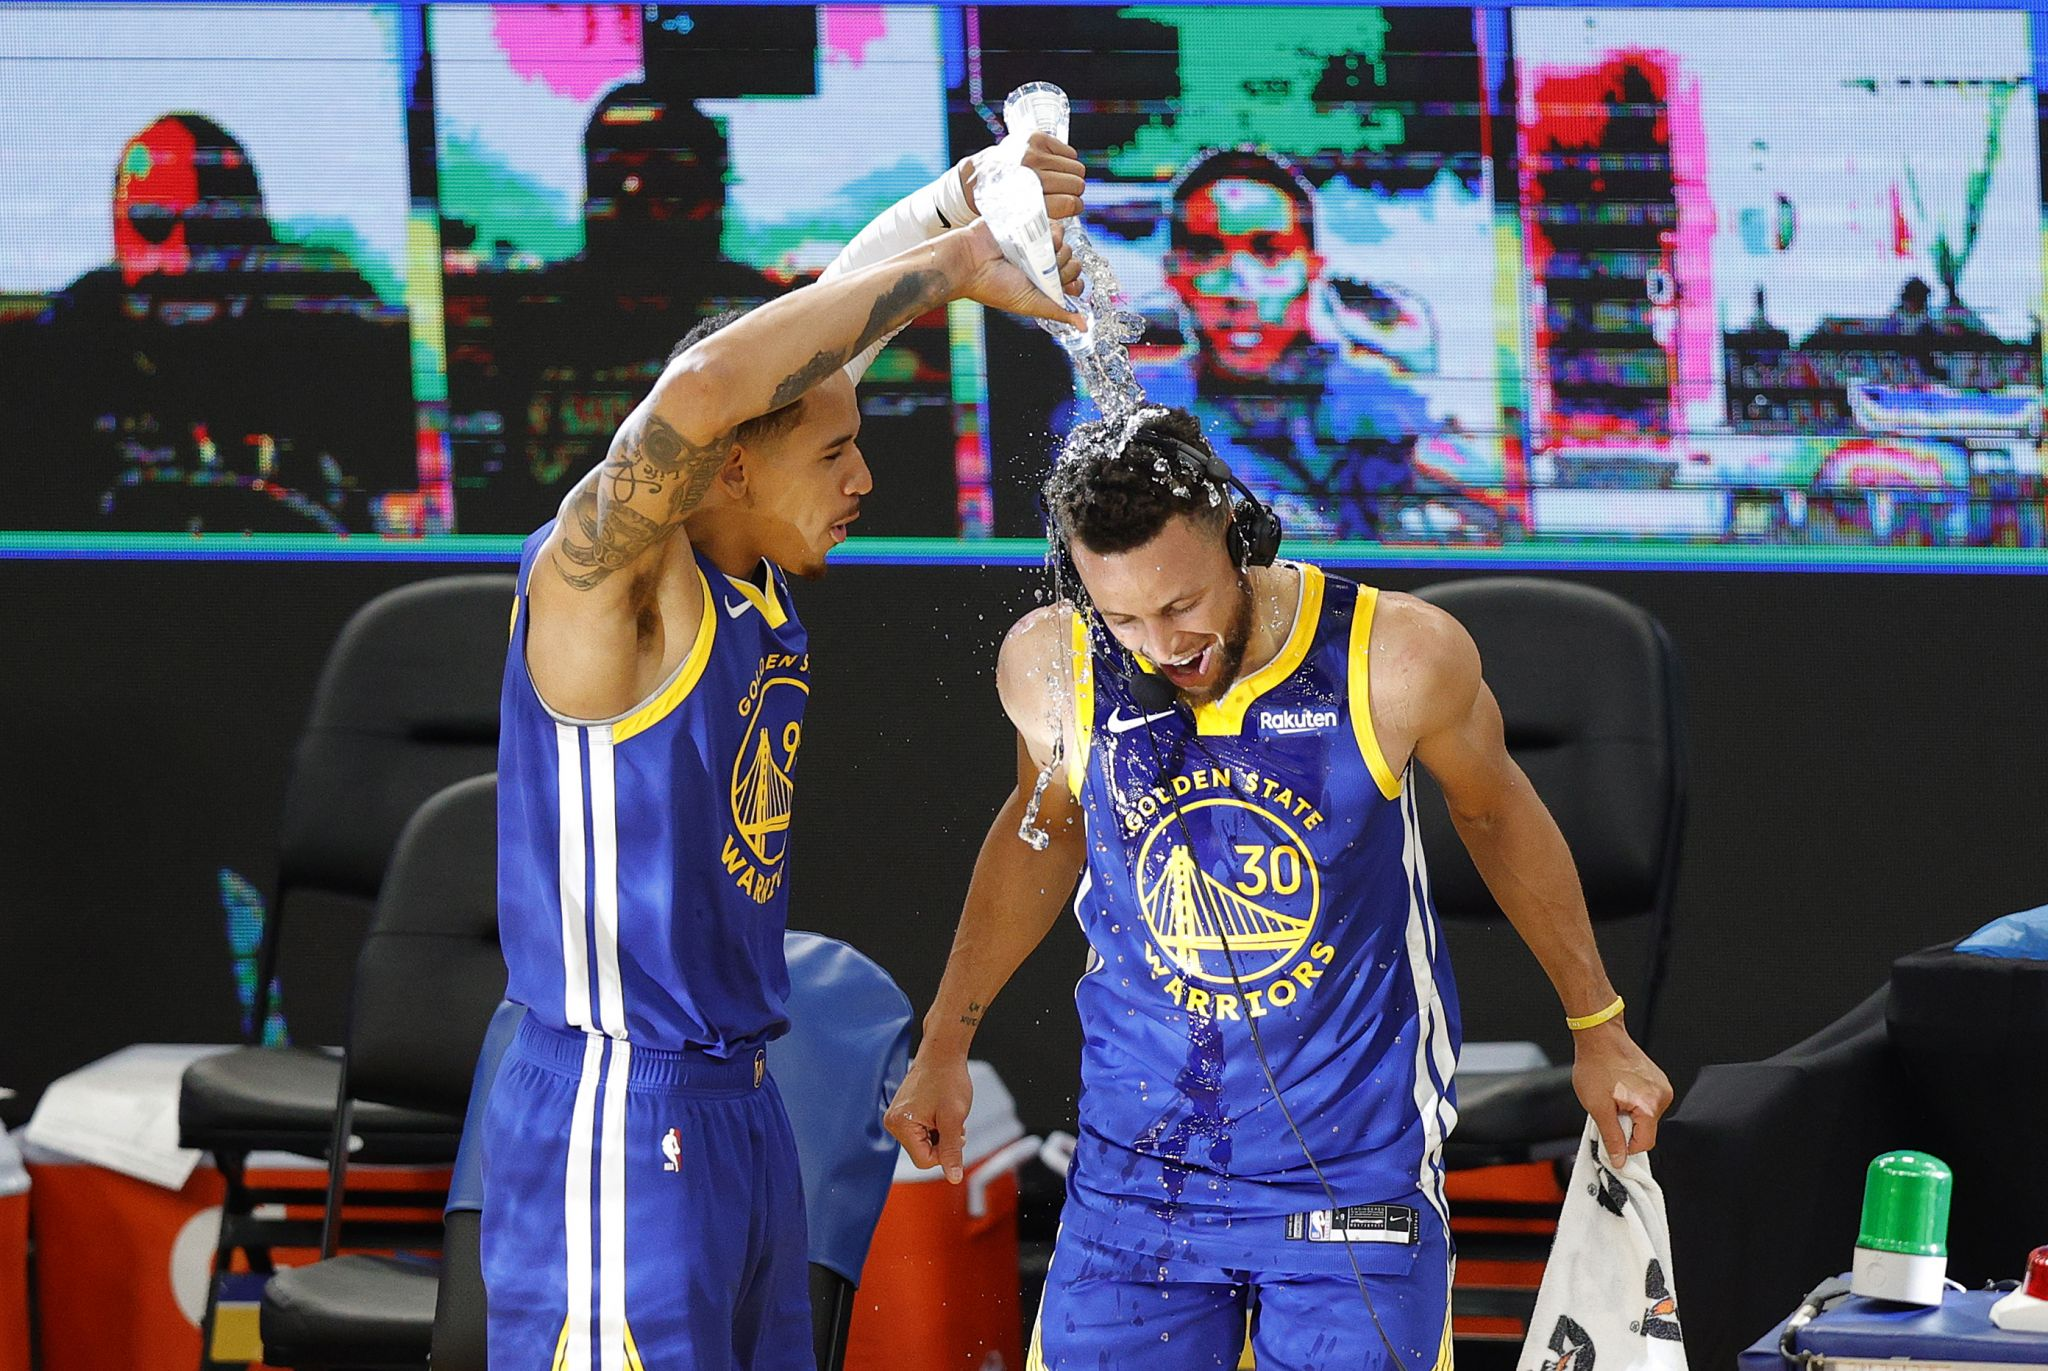 Dubs legend surprises Curry after he sets scoring record